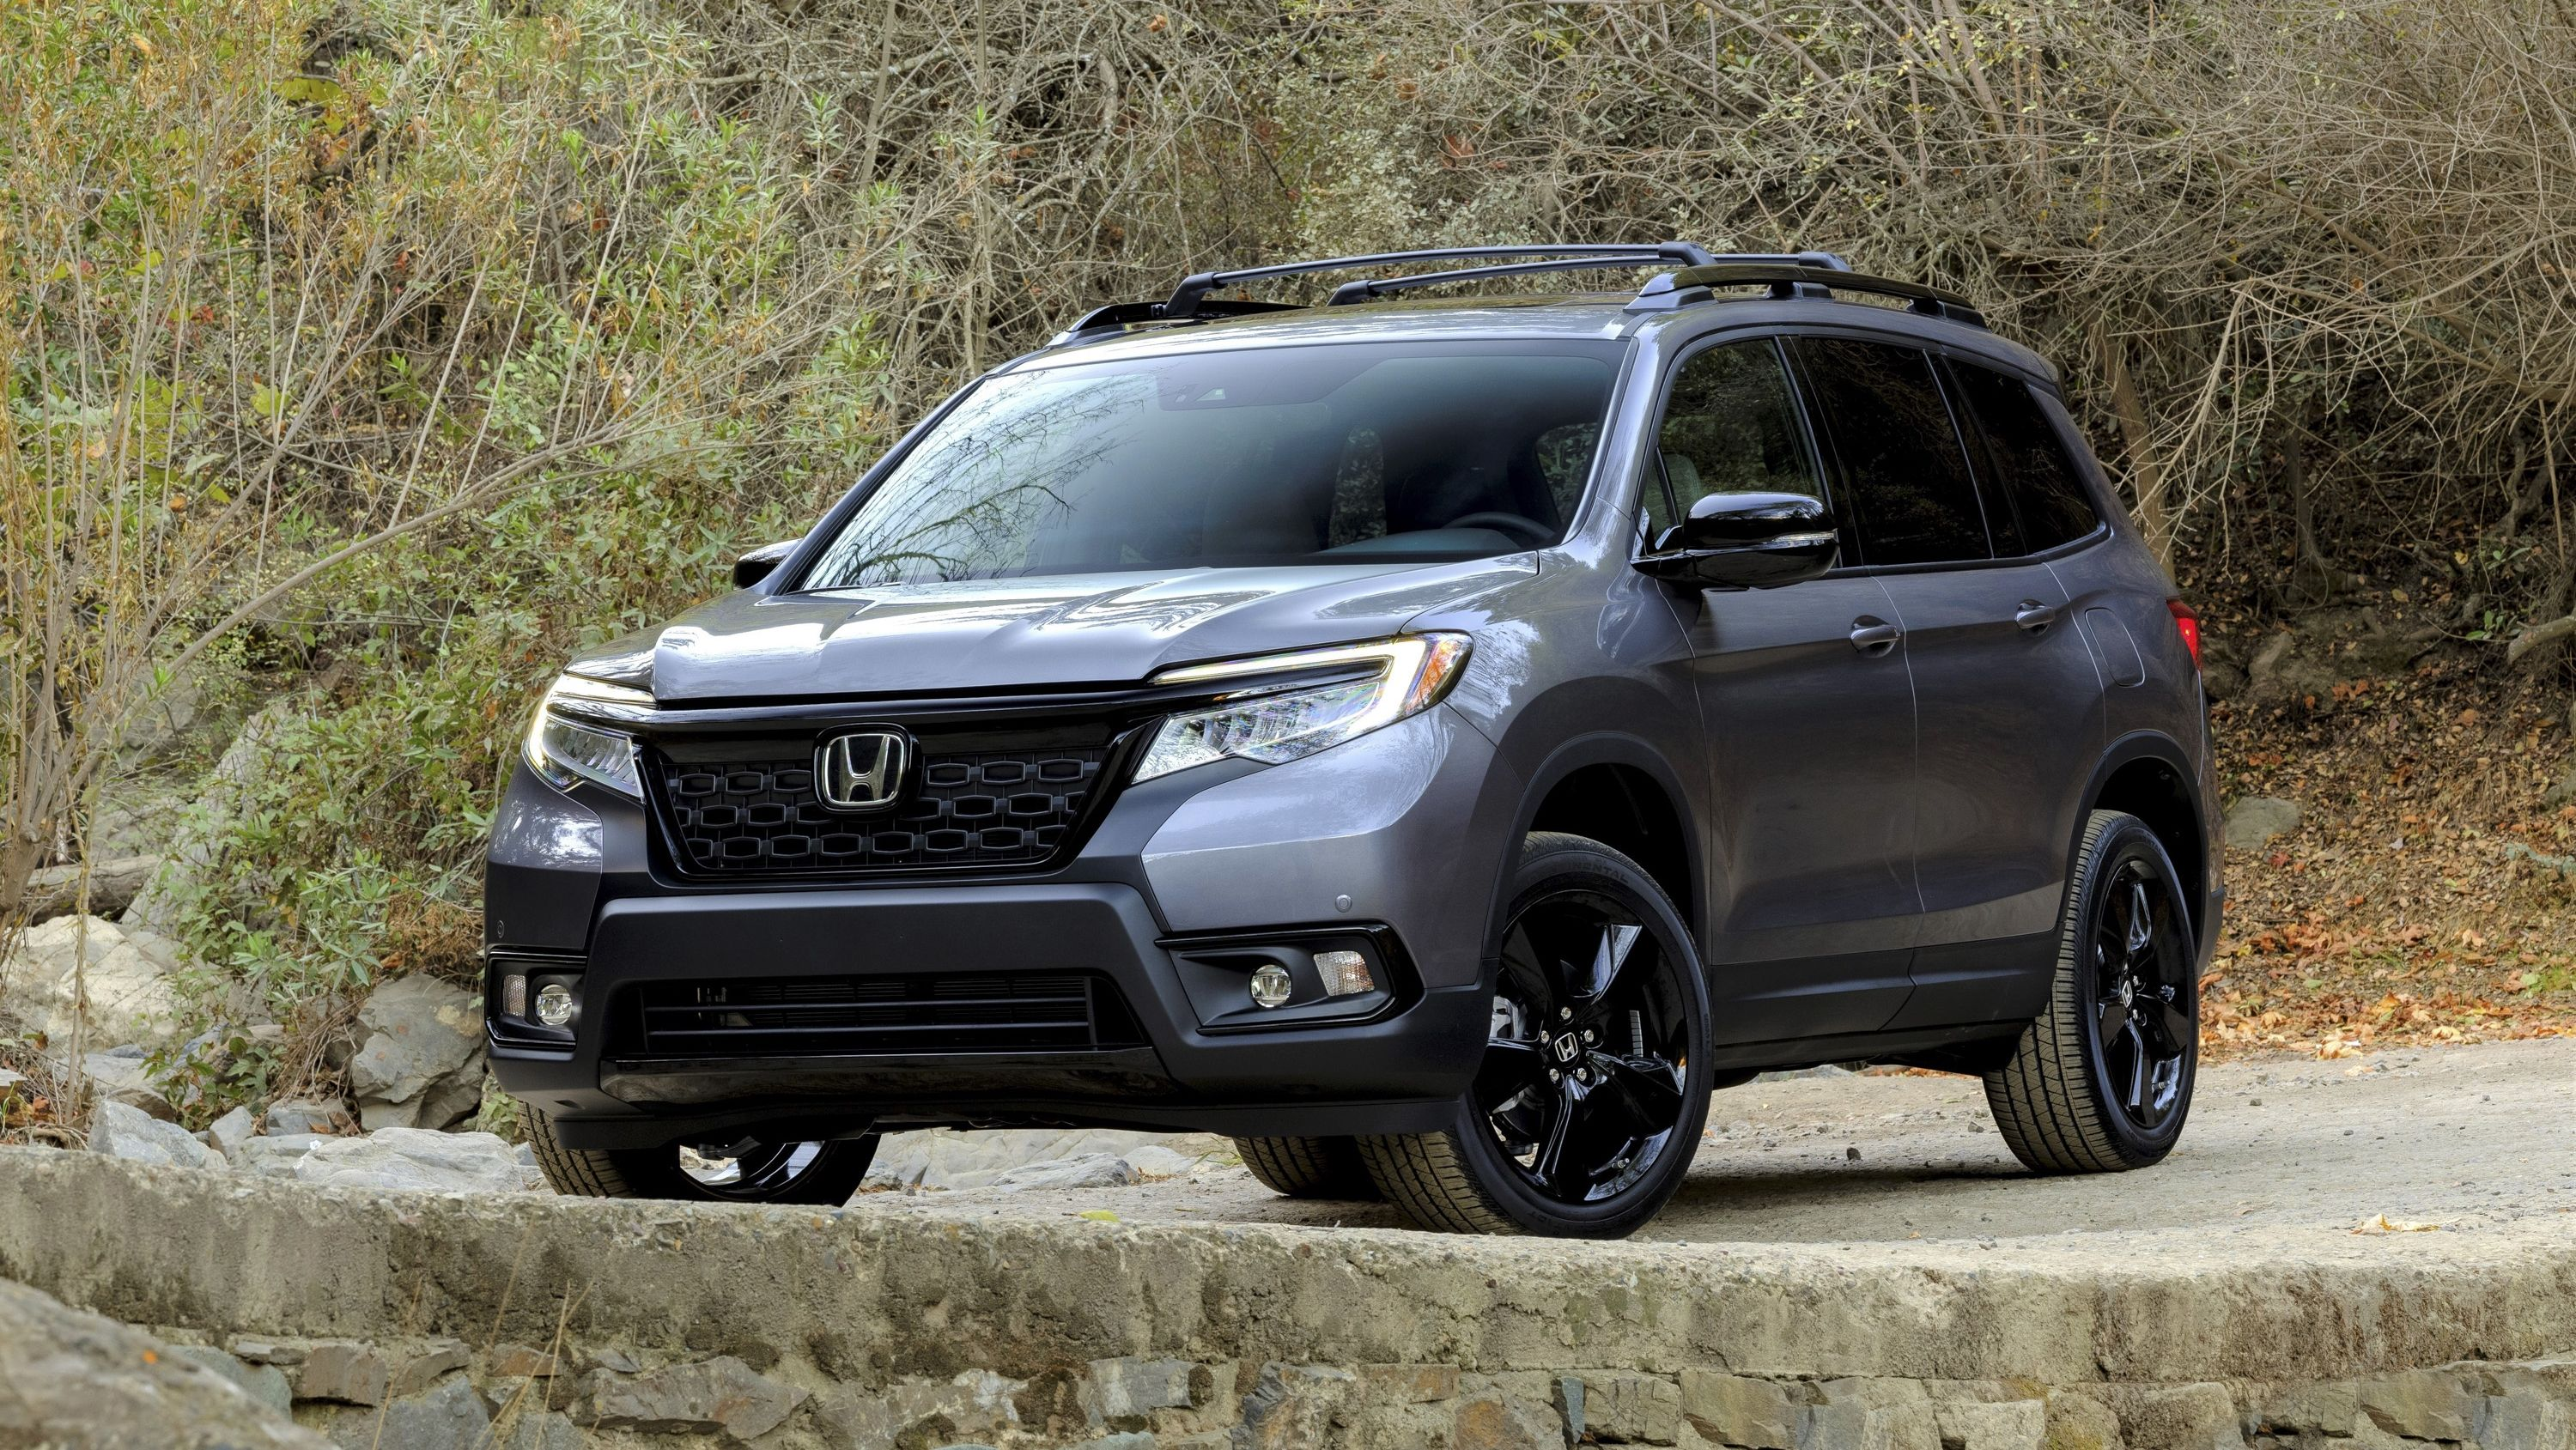 16 Little Known Facts About The 2020 Honda Passport Top Speed Honda Passport Honda Pilot Honda